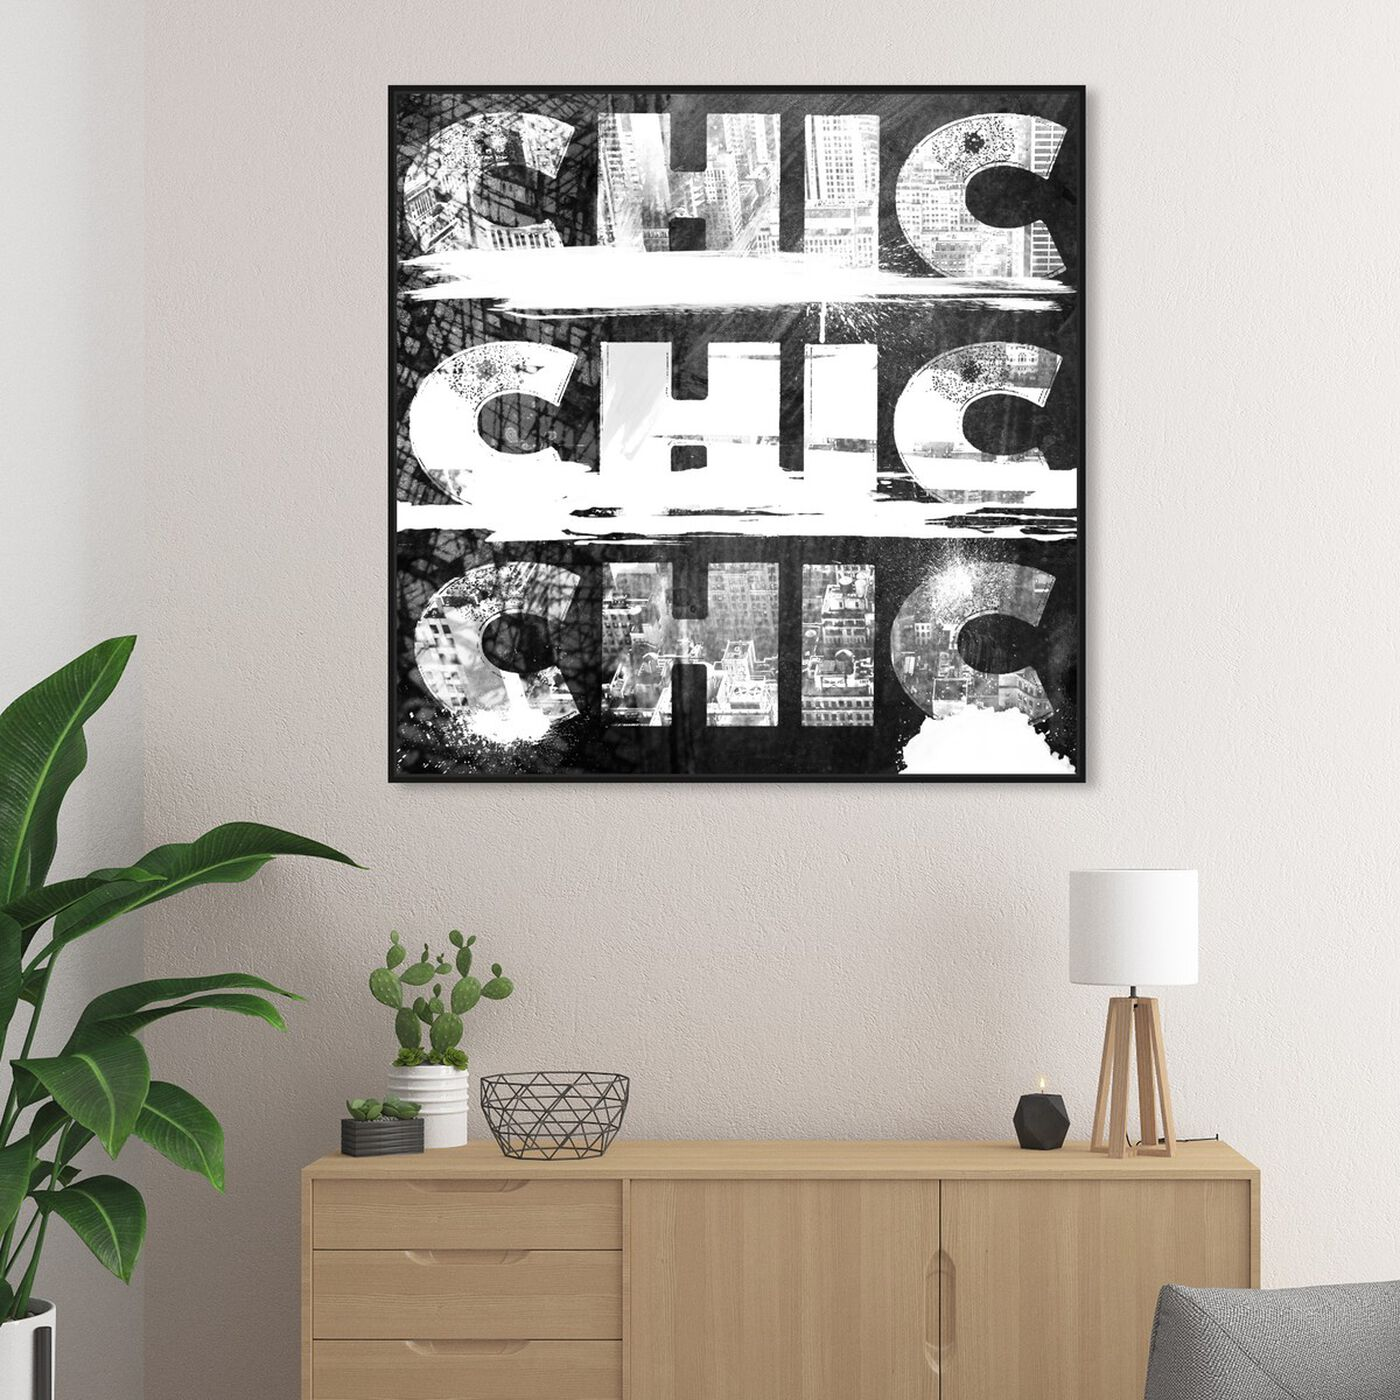 Hanging view of Triple City Chic featuring typography and quotes and beauty quotes and sayings art.